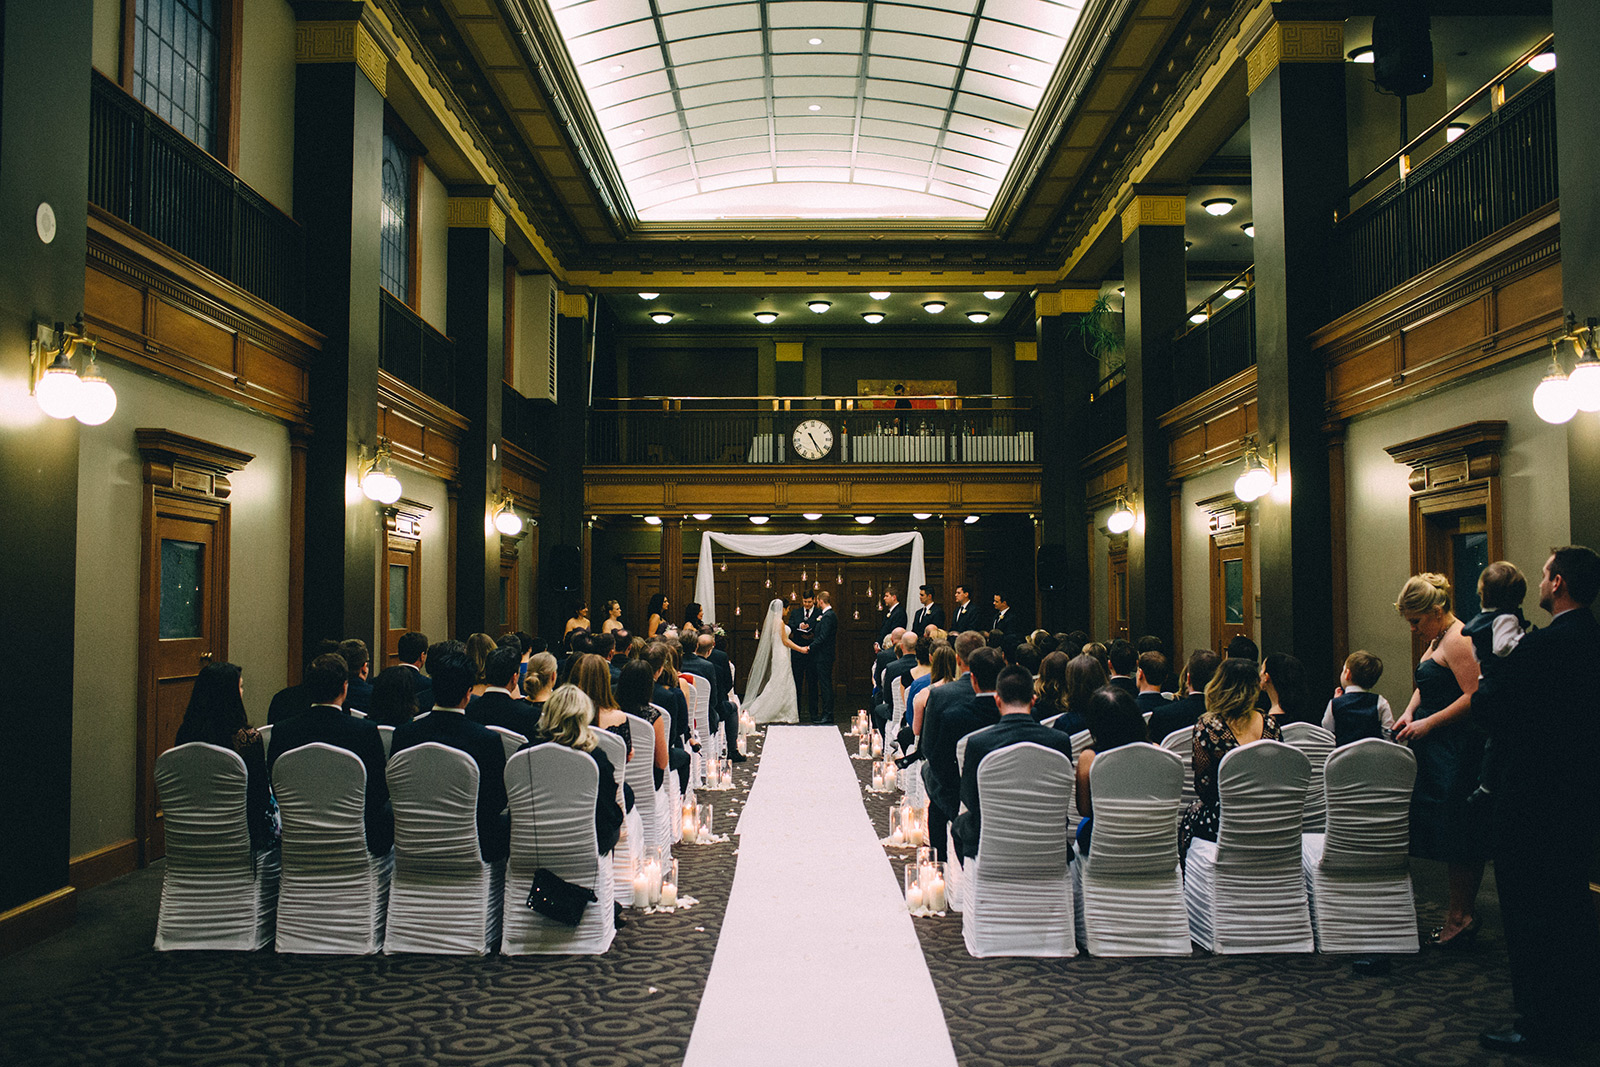 One-King-West-Toronto-wedding-photography_Sam-Wong-of-Visual-Cravings_KnR-27